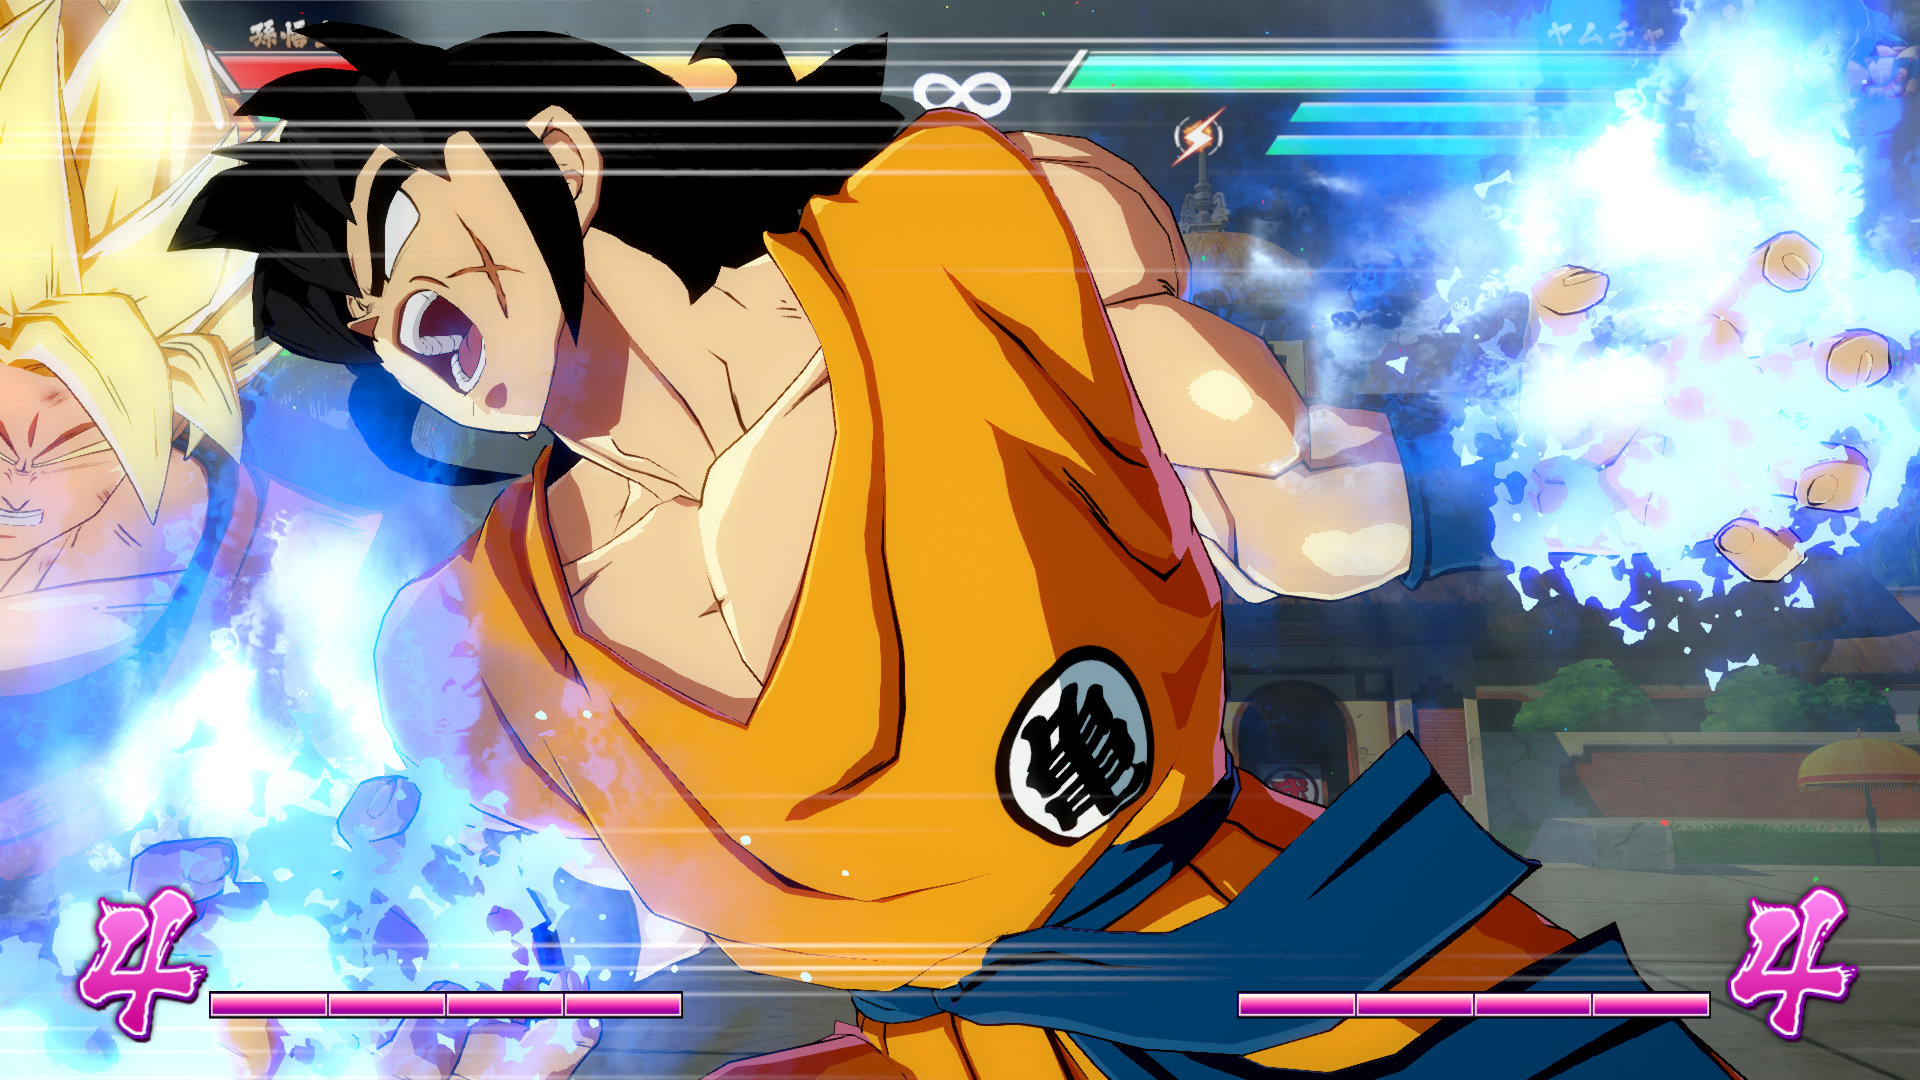 The Game Modes Dragon Ball Z Fighters Yamcha 1545975 Hd Wallpaper Backgrounds Download